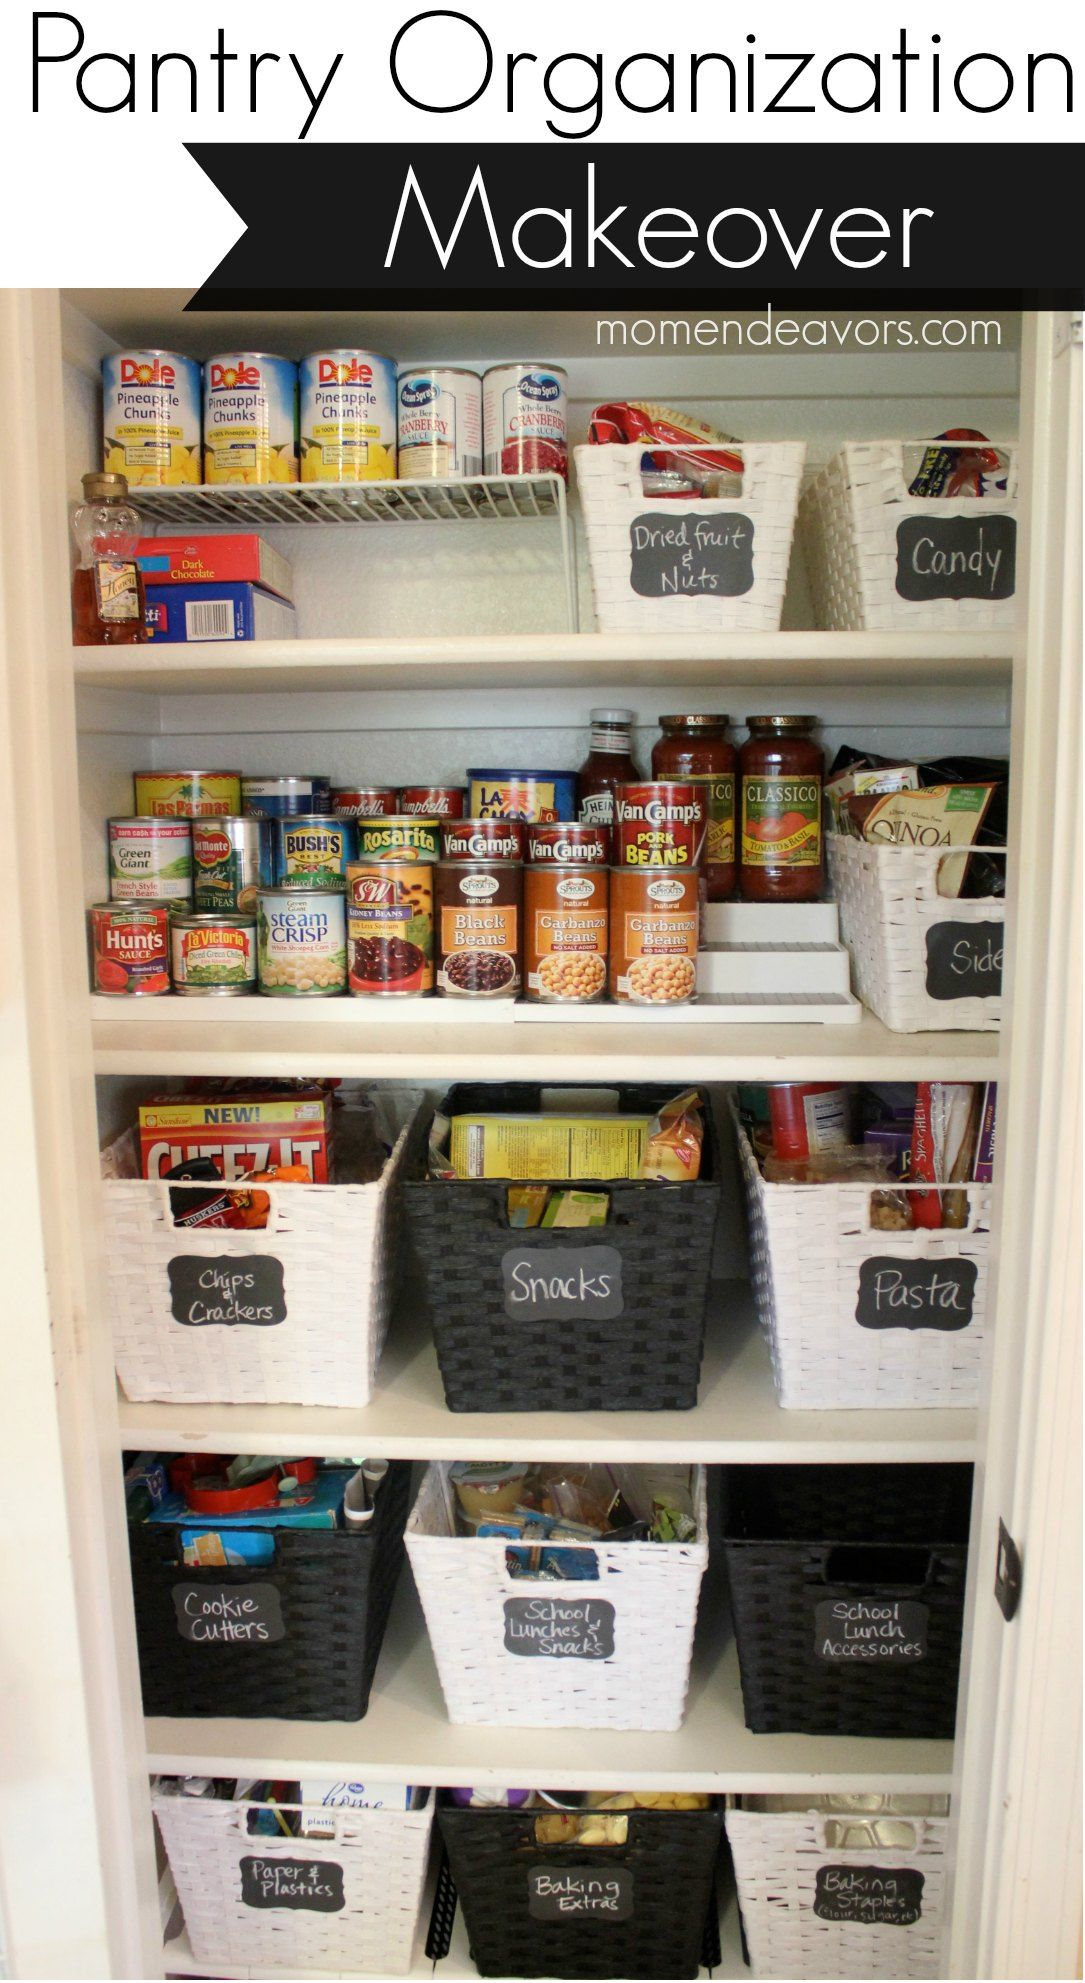 Charmant Pantry Organization Makeover